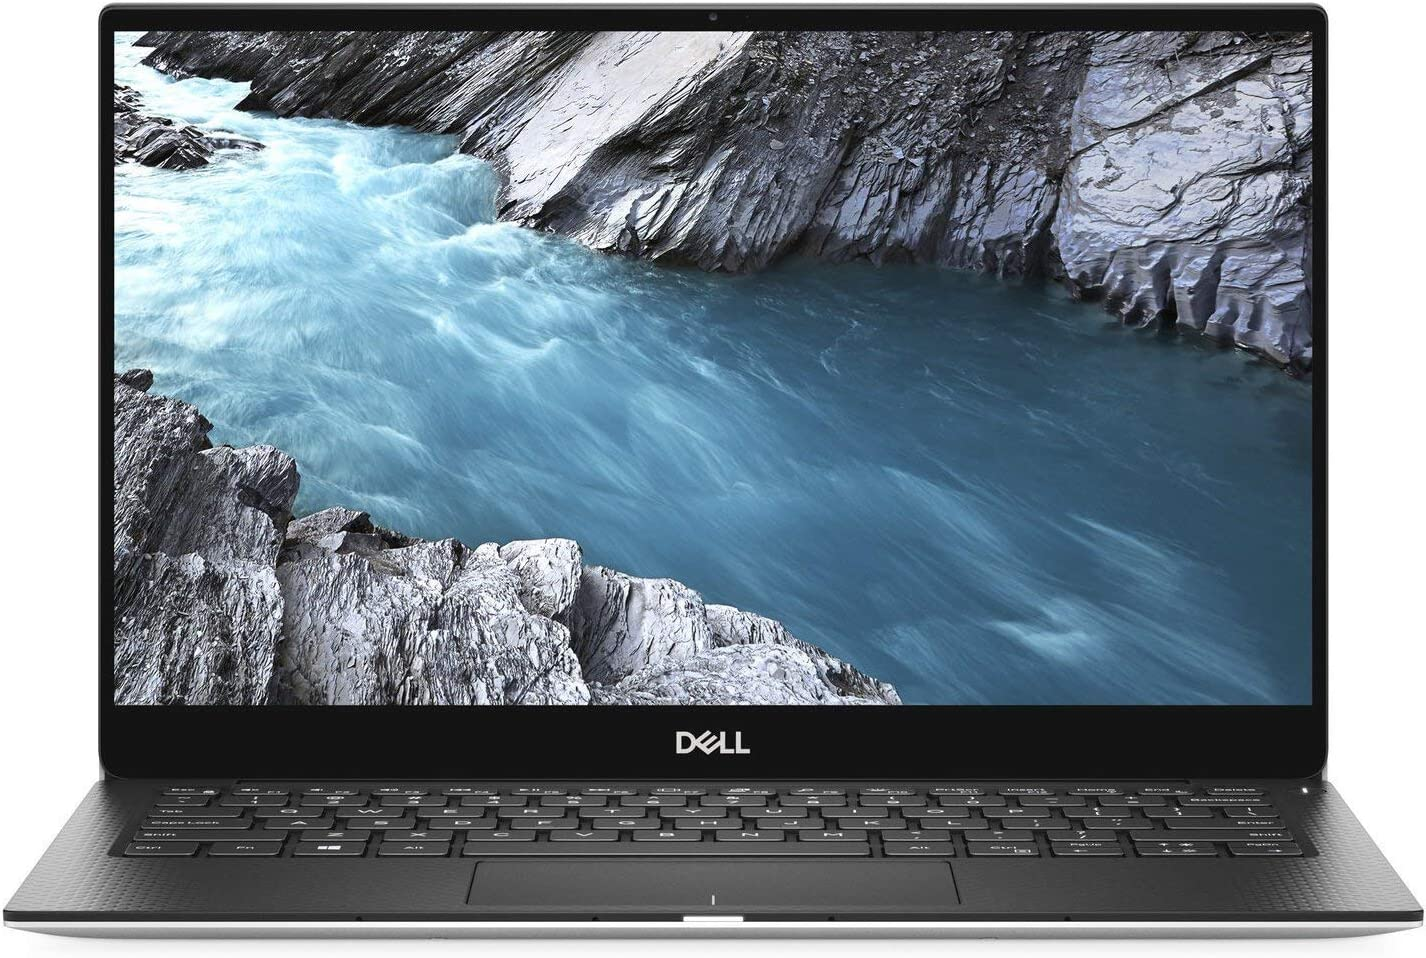 Dell XPS 13 9380, 13.3